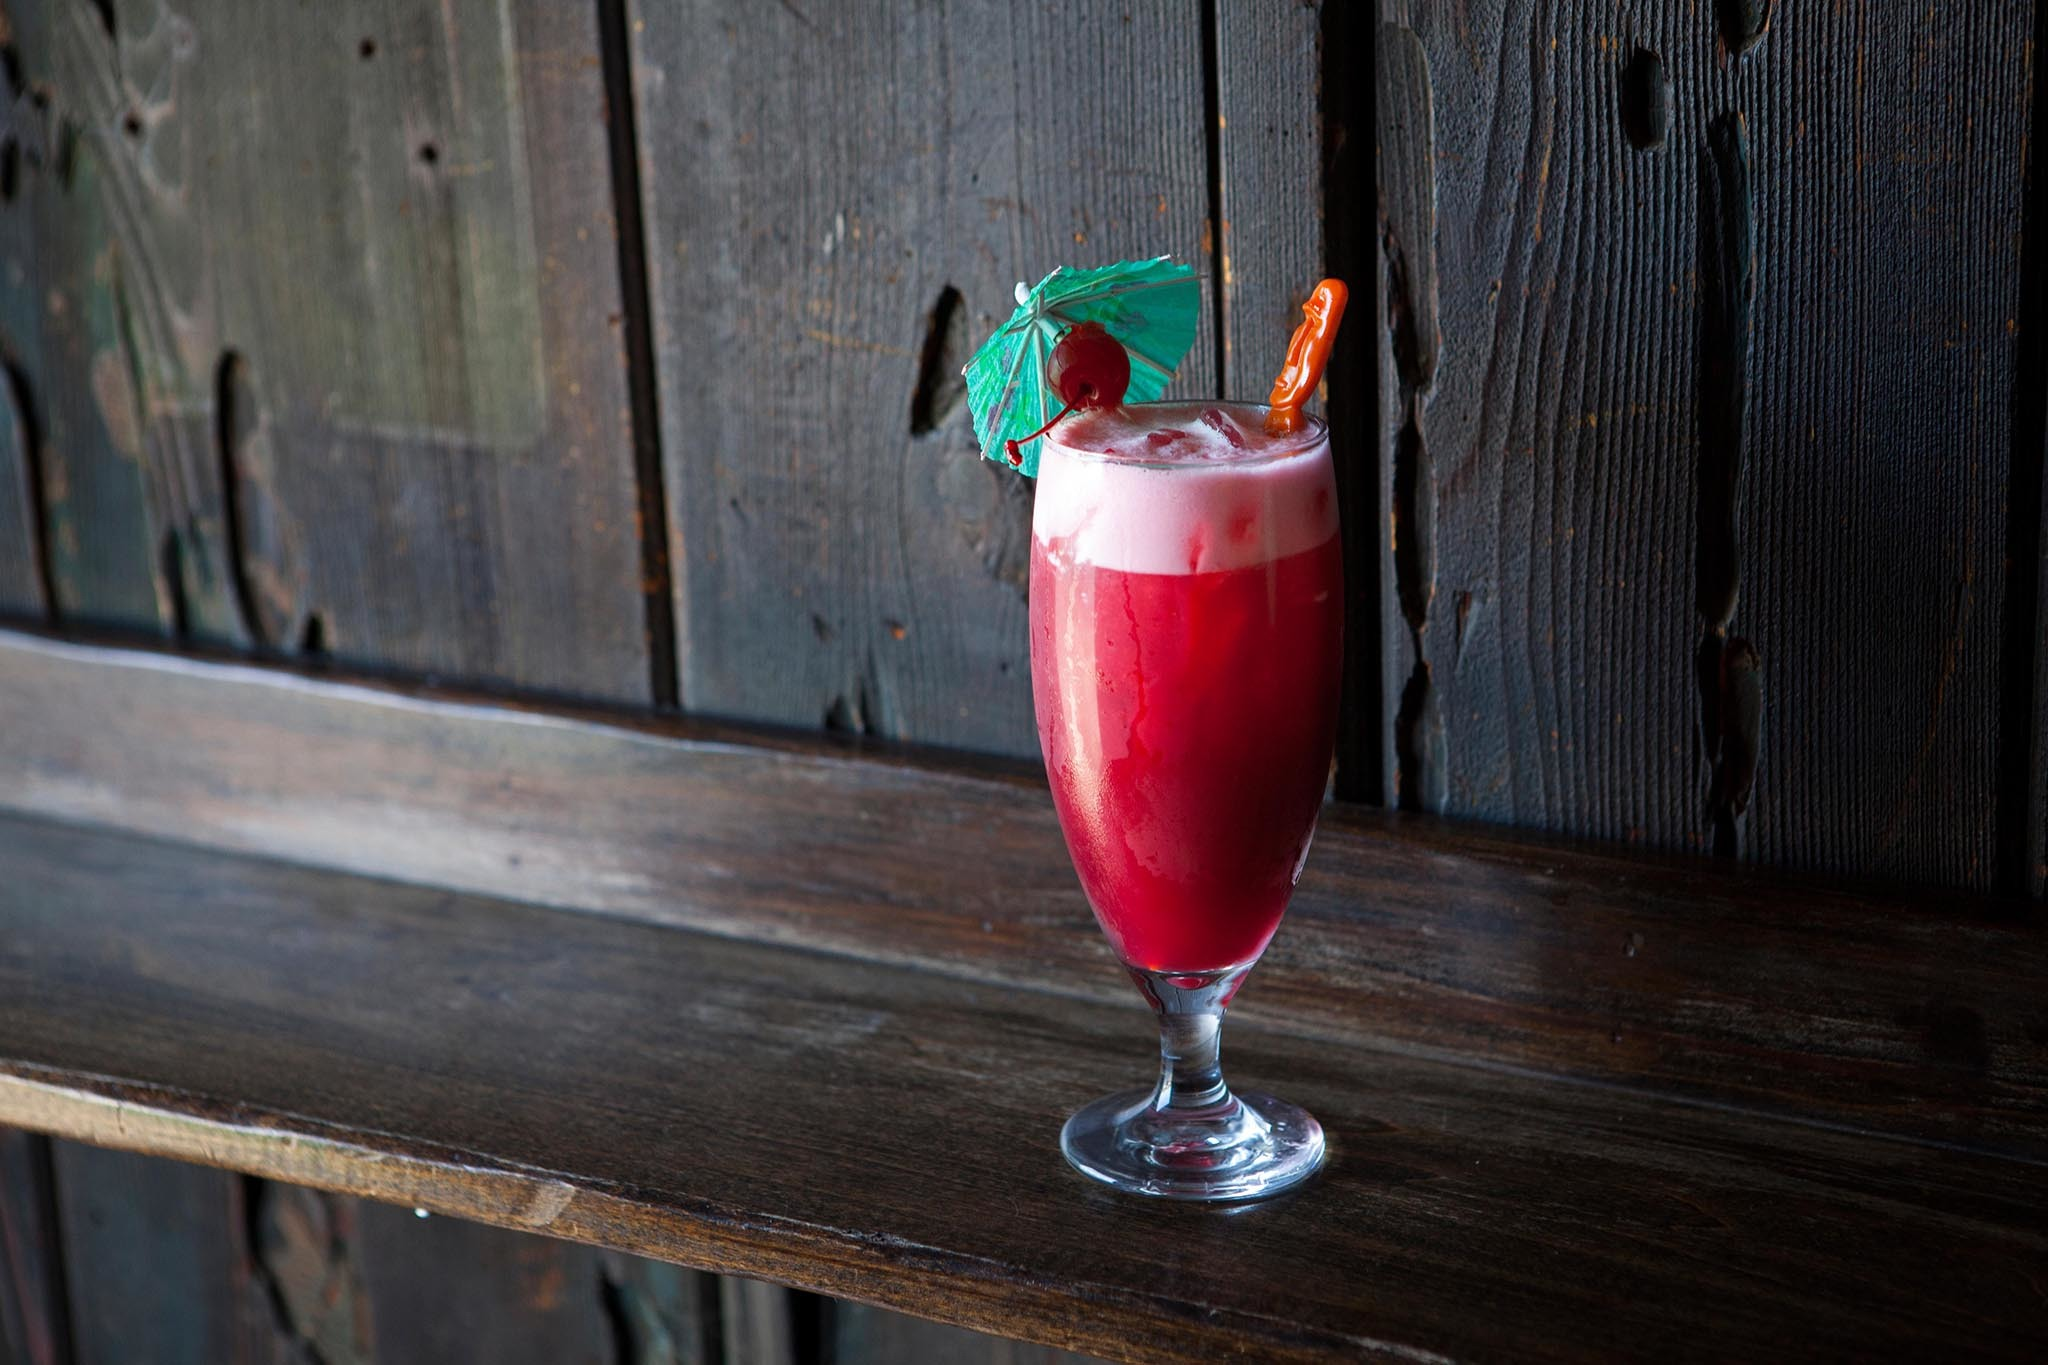 The 6 best tiki bars in L.A.